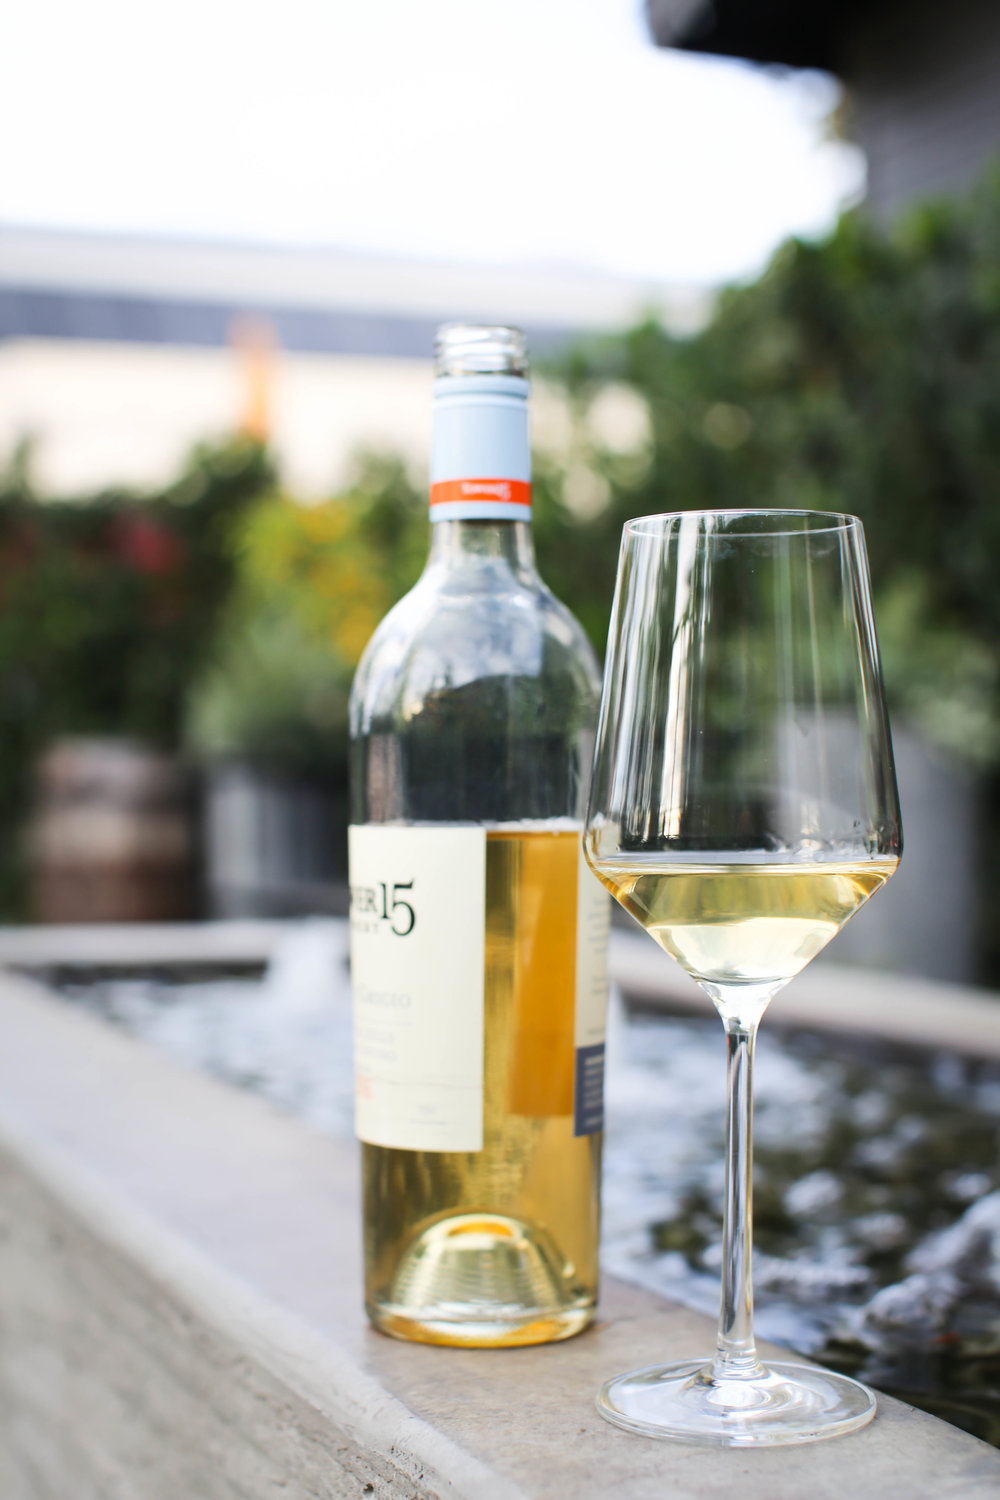 chardonnay-and-bottle2.jpg